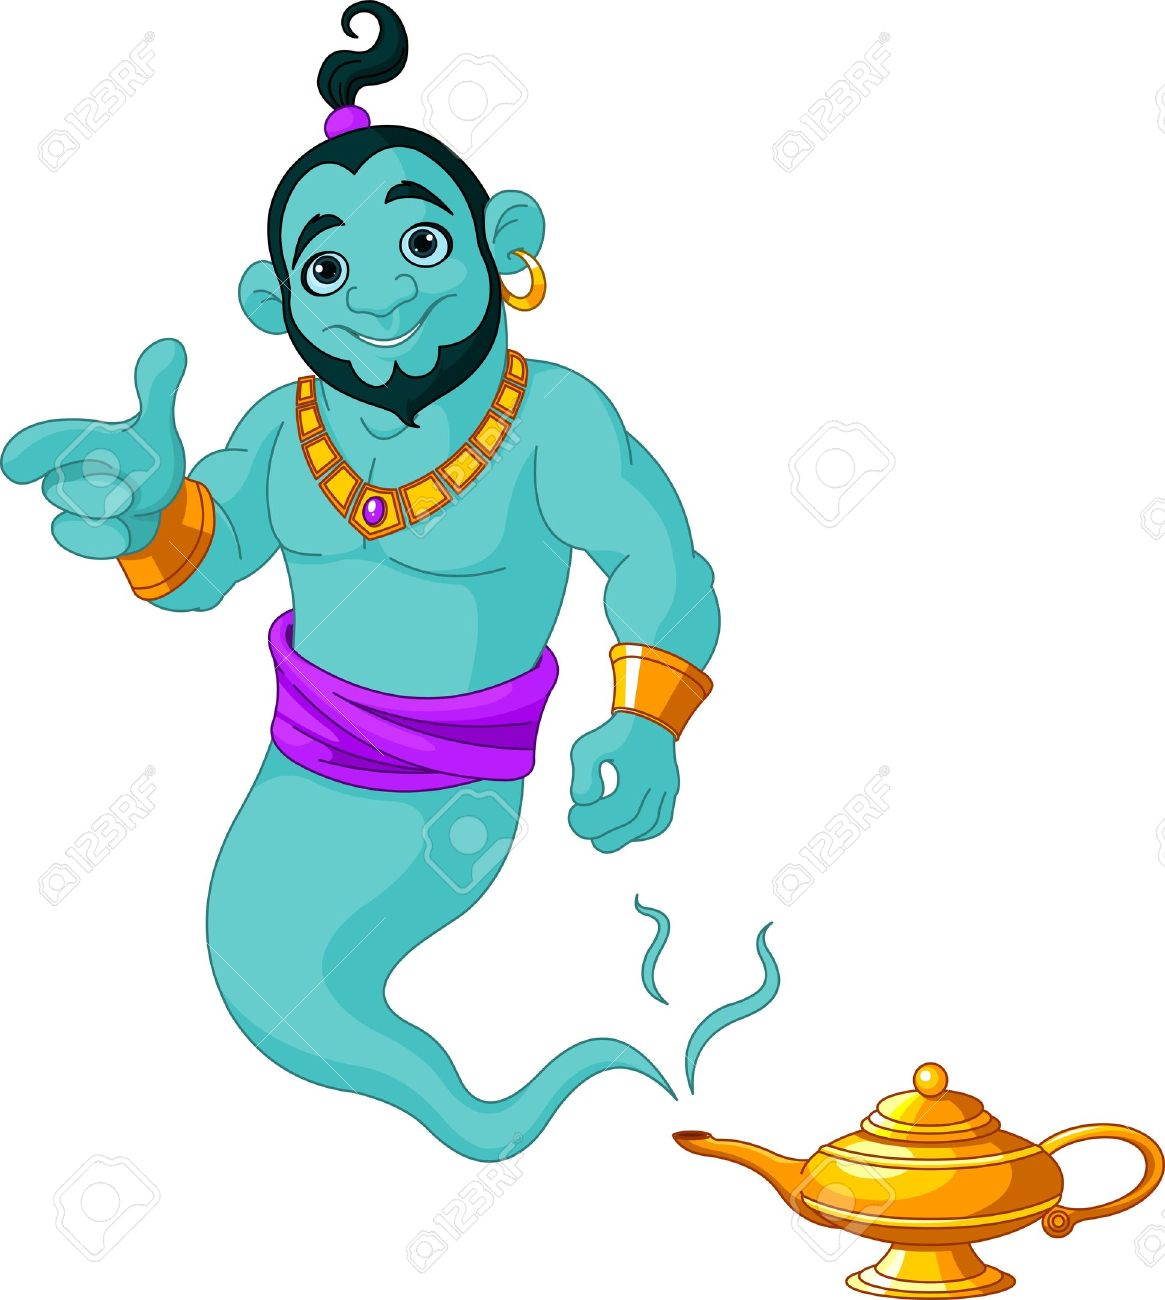 Genie lamp stock photos pictures royalty free genie - Genie Lamp Genie Appear From Magic Lamp